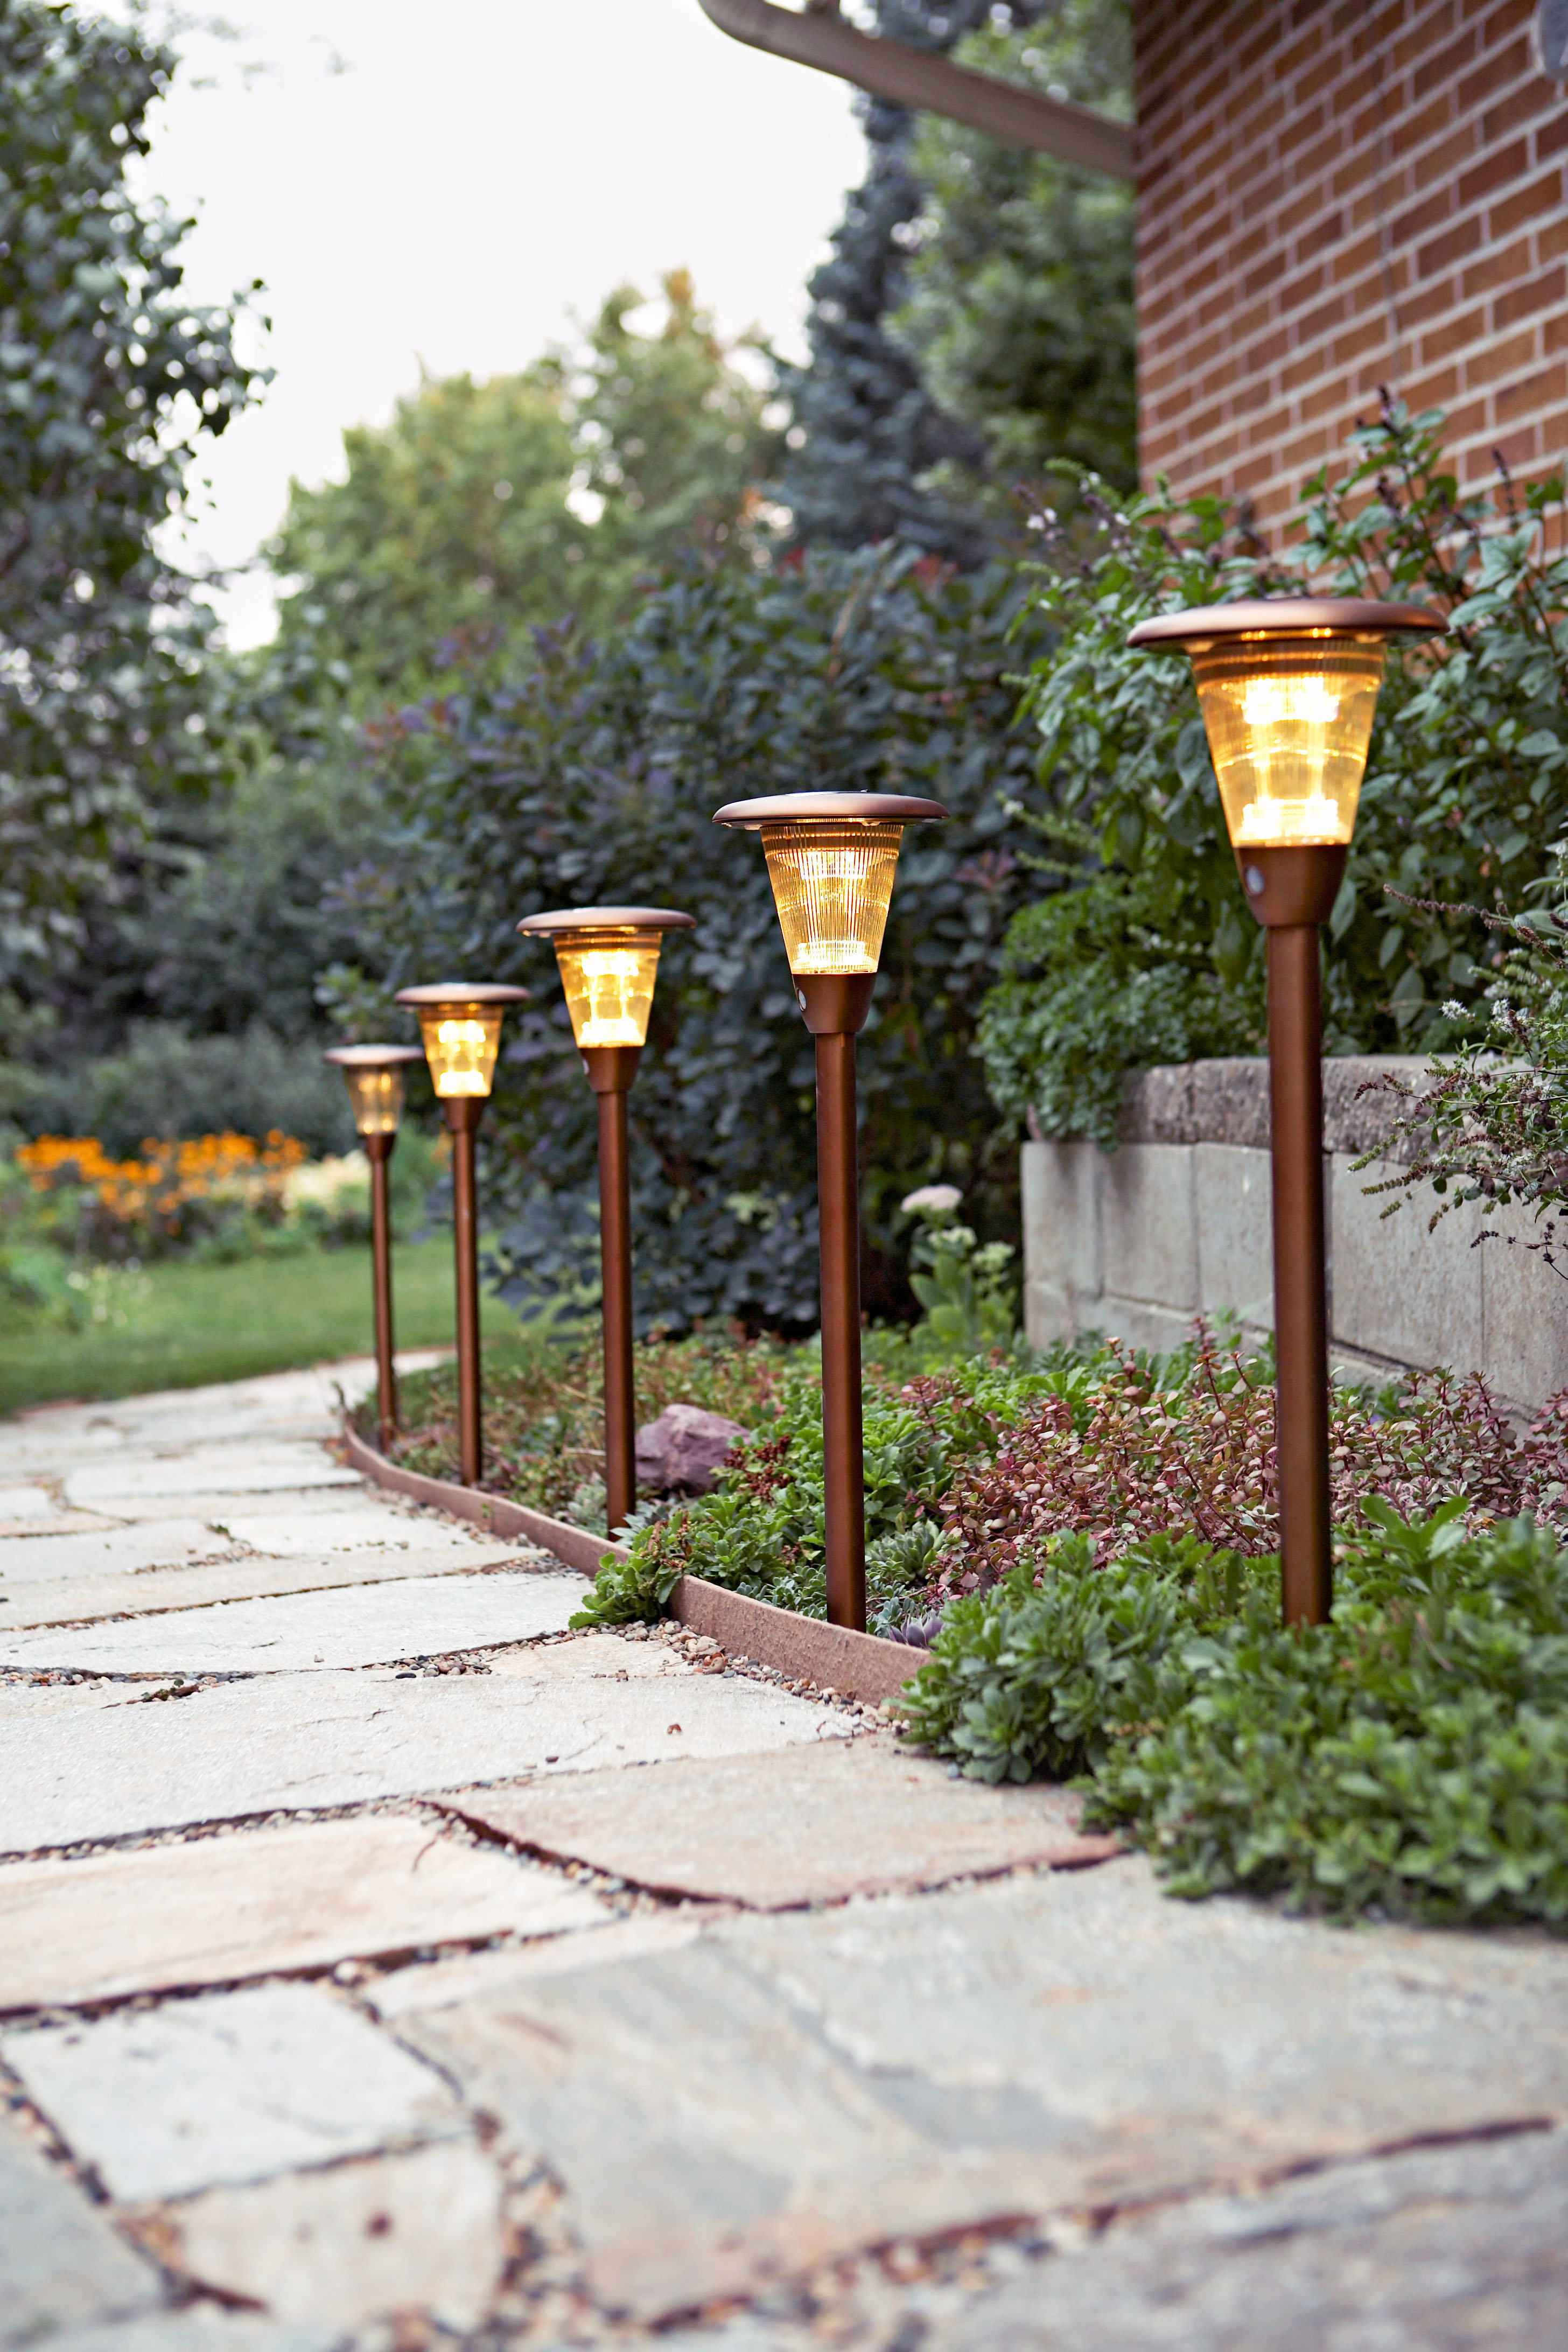 Solar Landscape Lighting for Every Outdoor Need